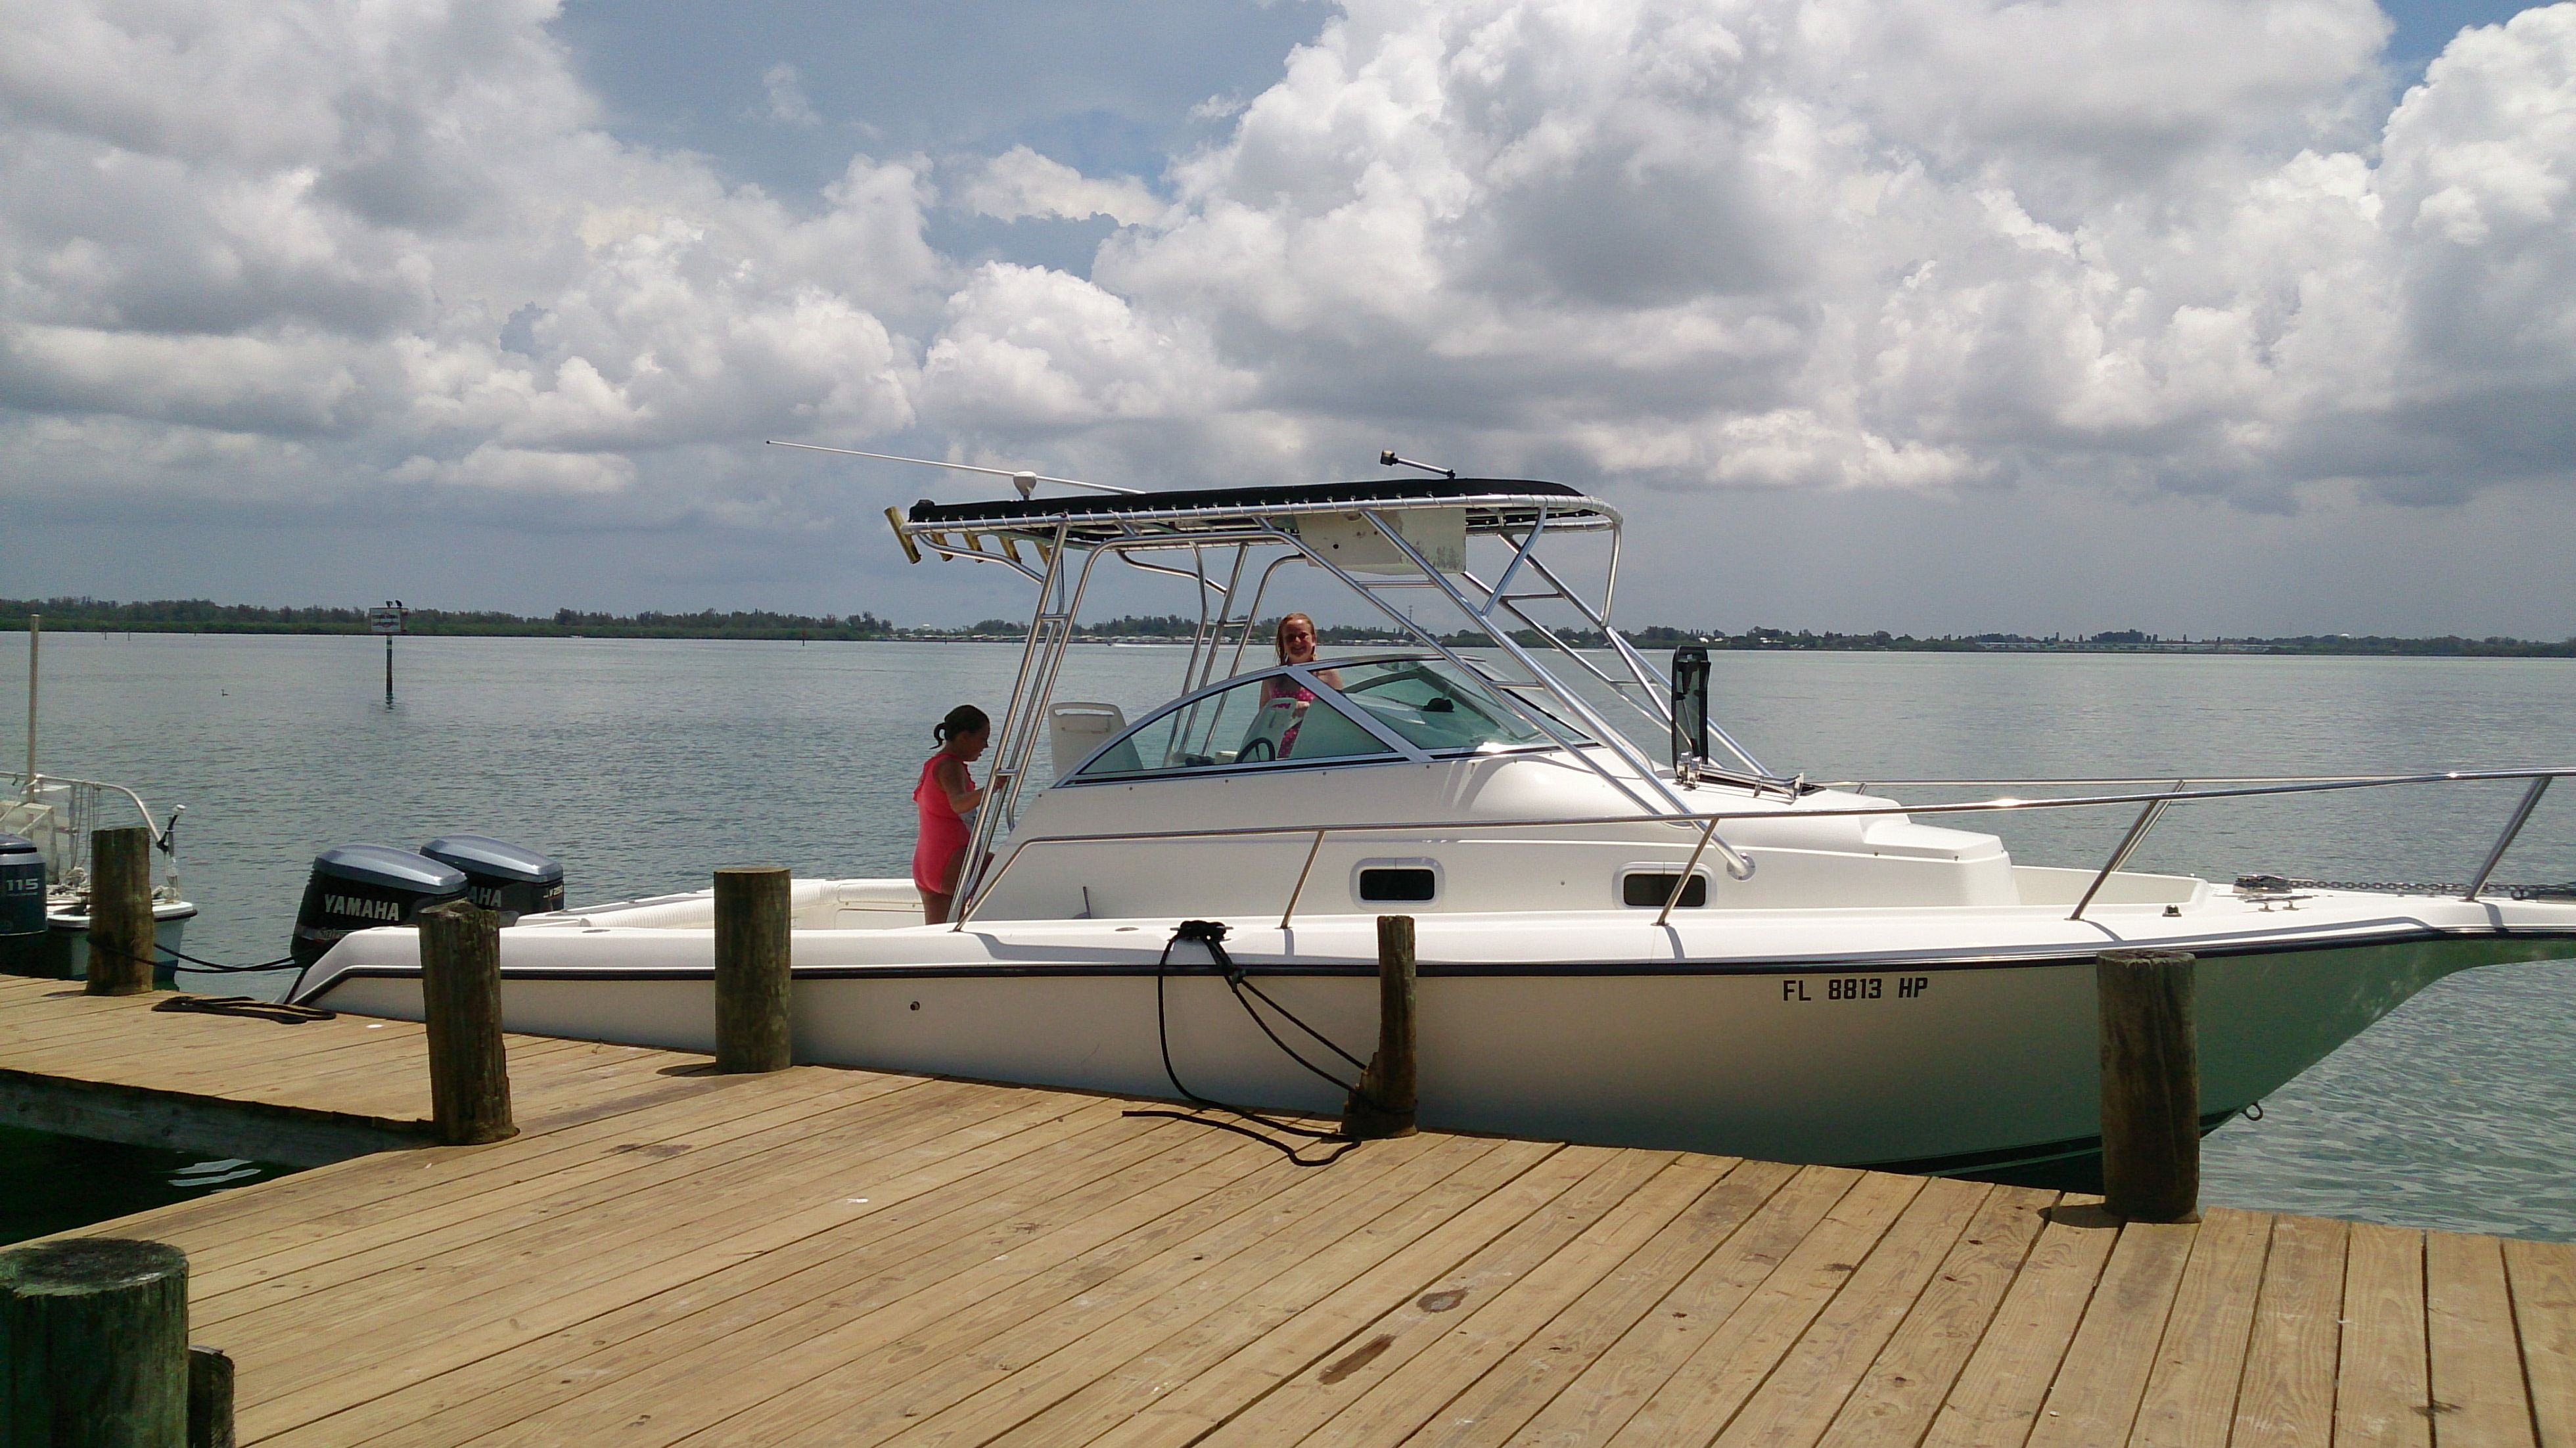 Boat Rentals In Tampa Florida Rent A Boat And Cruise Hillsborough River Tampa Bay And The Gulf Of Mexico This 31 Footer I Boat Rental Sailboat Rental Boat